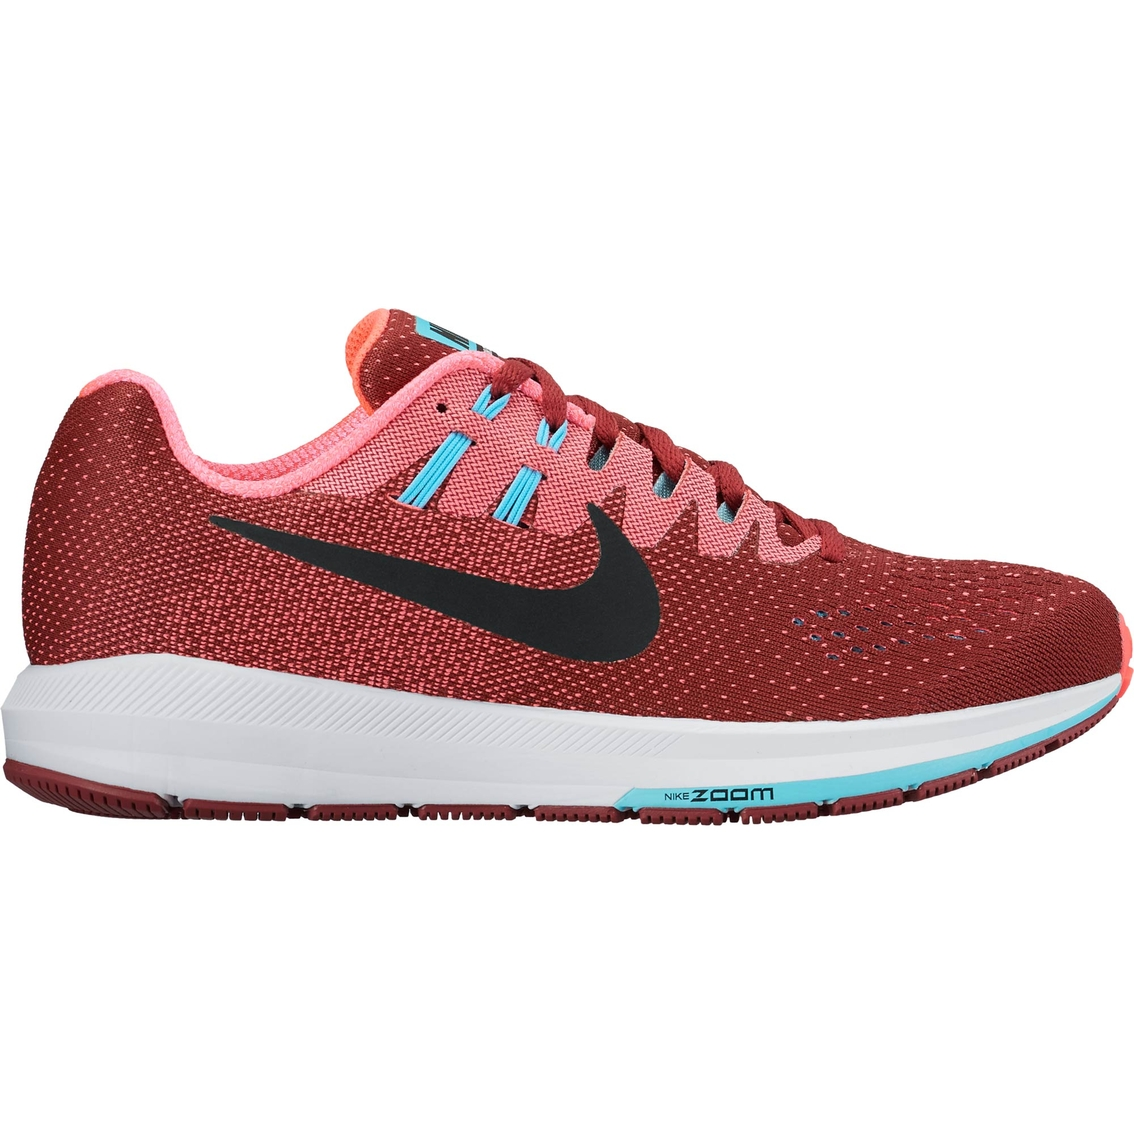 3d987d35735b1 Nike Women s Air Zoom Structure 20 Running Shoes